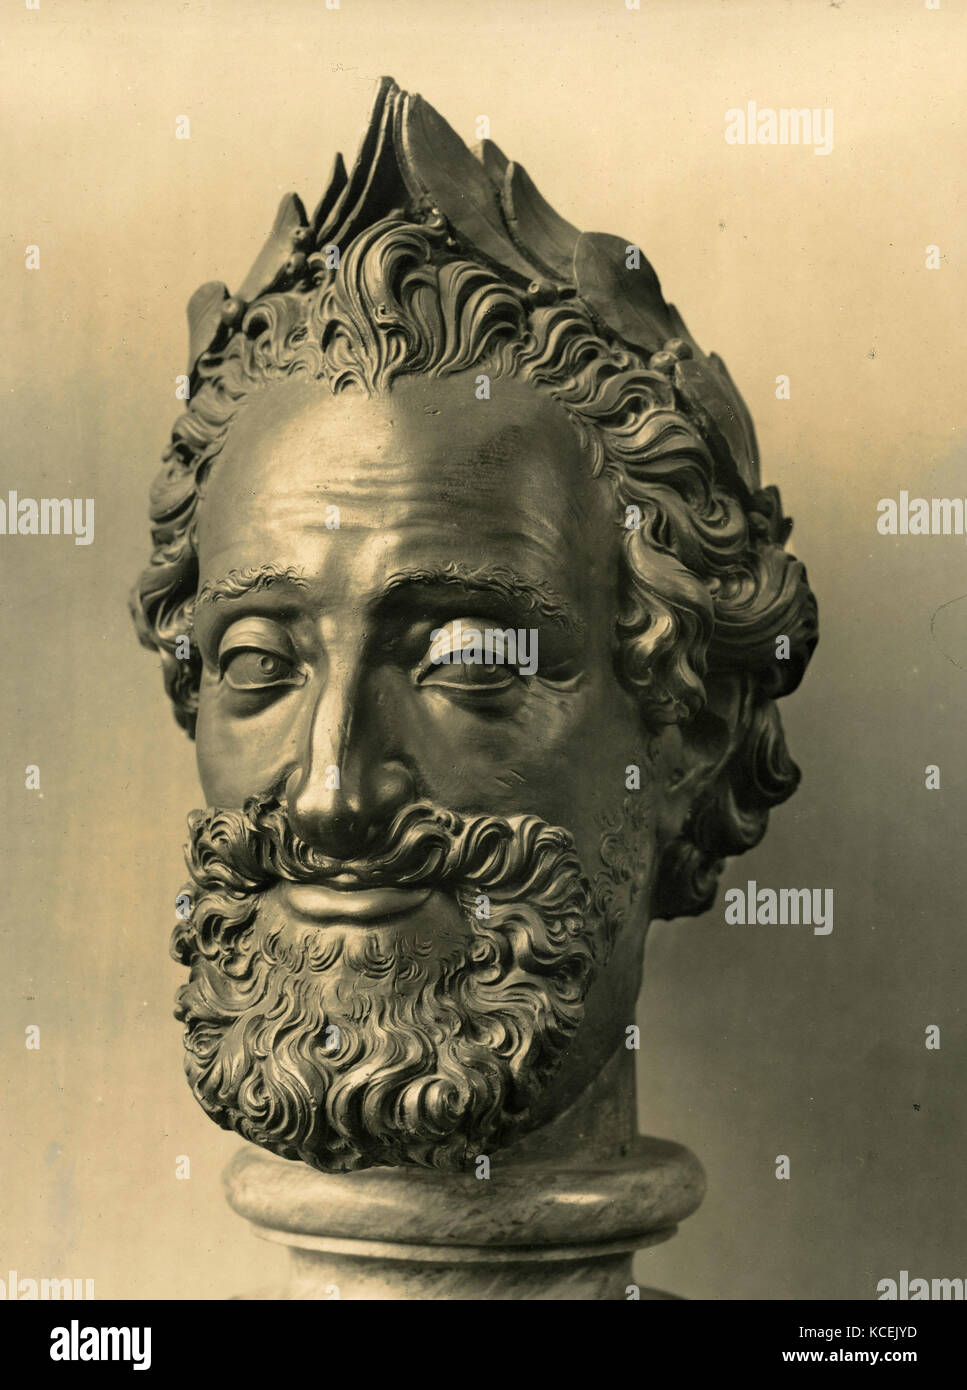 Bronze head statue of Henry IV King of France - Stock Image